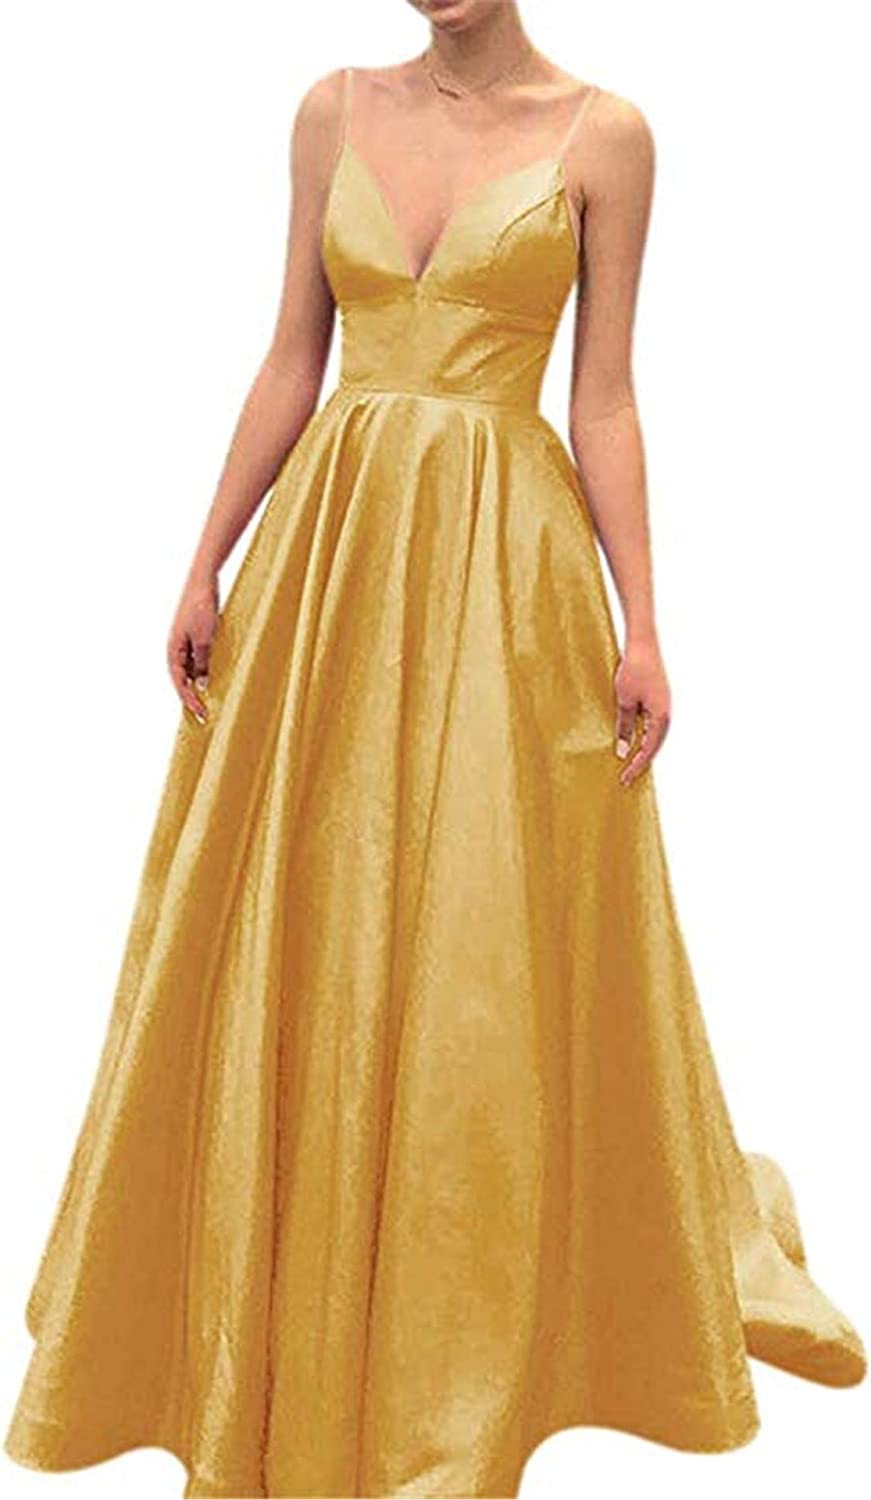 QiJunGe V Neck Evening Party Gown A Line Spaghetti Strap Prom Dress with Pocket